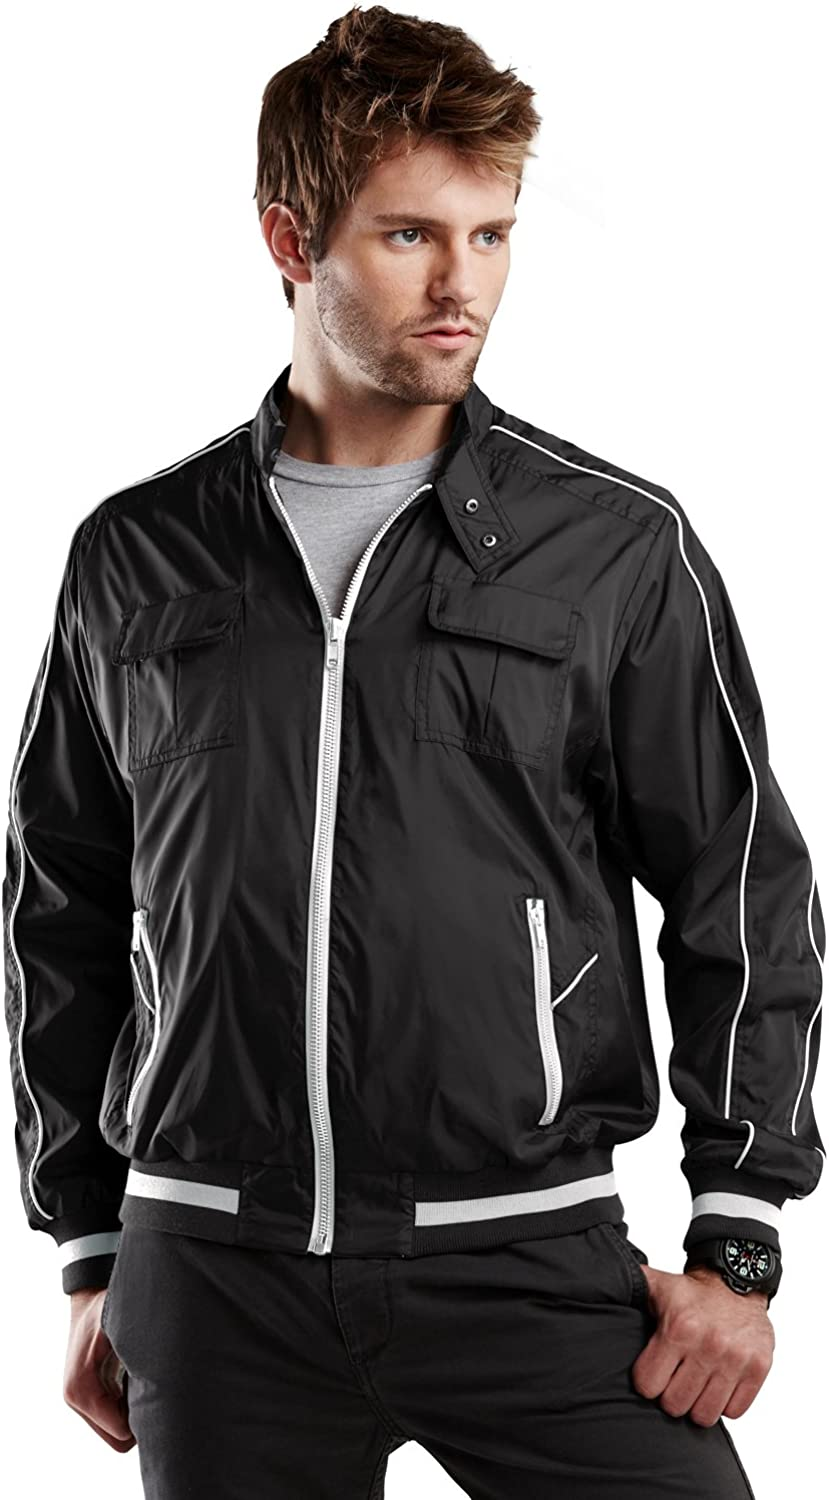 Big Size Jacket, Extra Pockets, Zipper Front 2 Chest Pockets in Black 3X and 4X